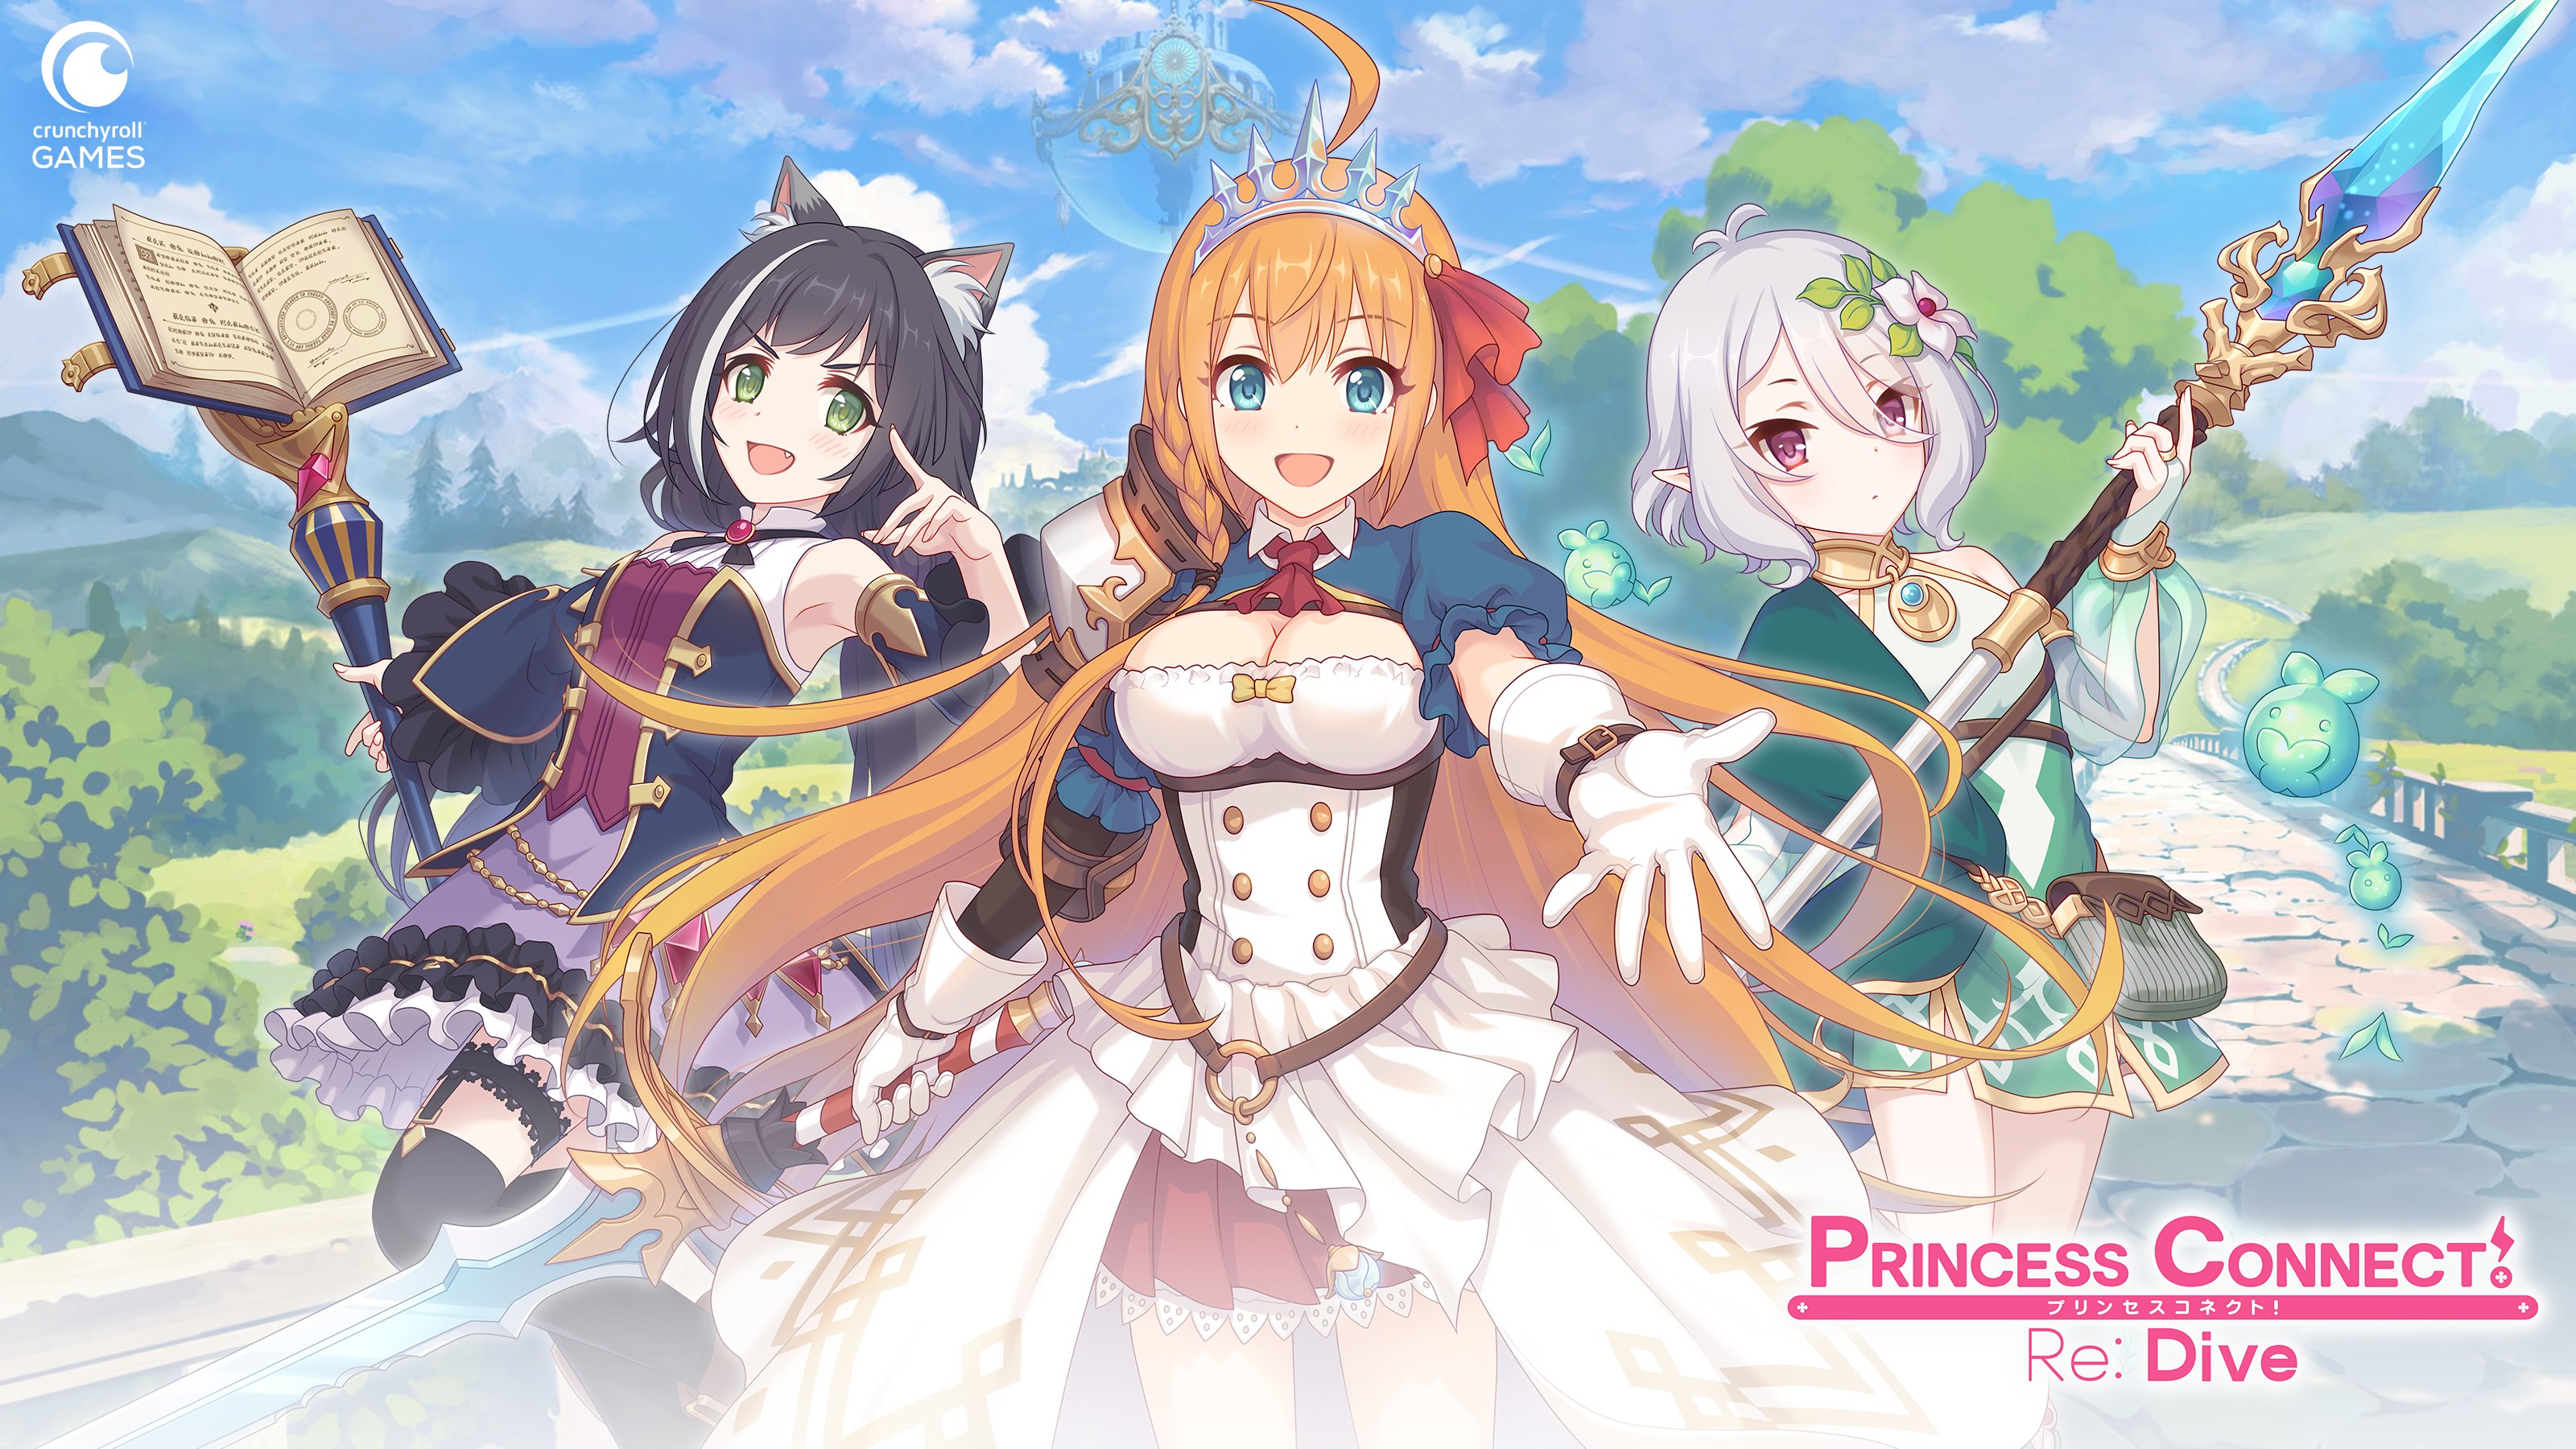 'Princess Connect Re:Dive' from Cygames Is Getting an English Release Next Year on iOS and Android